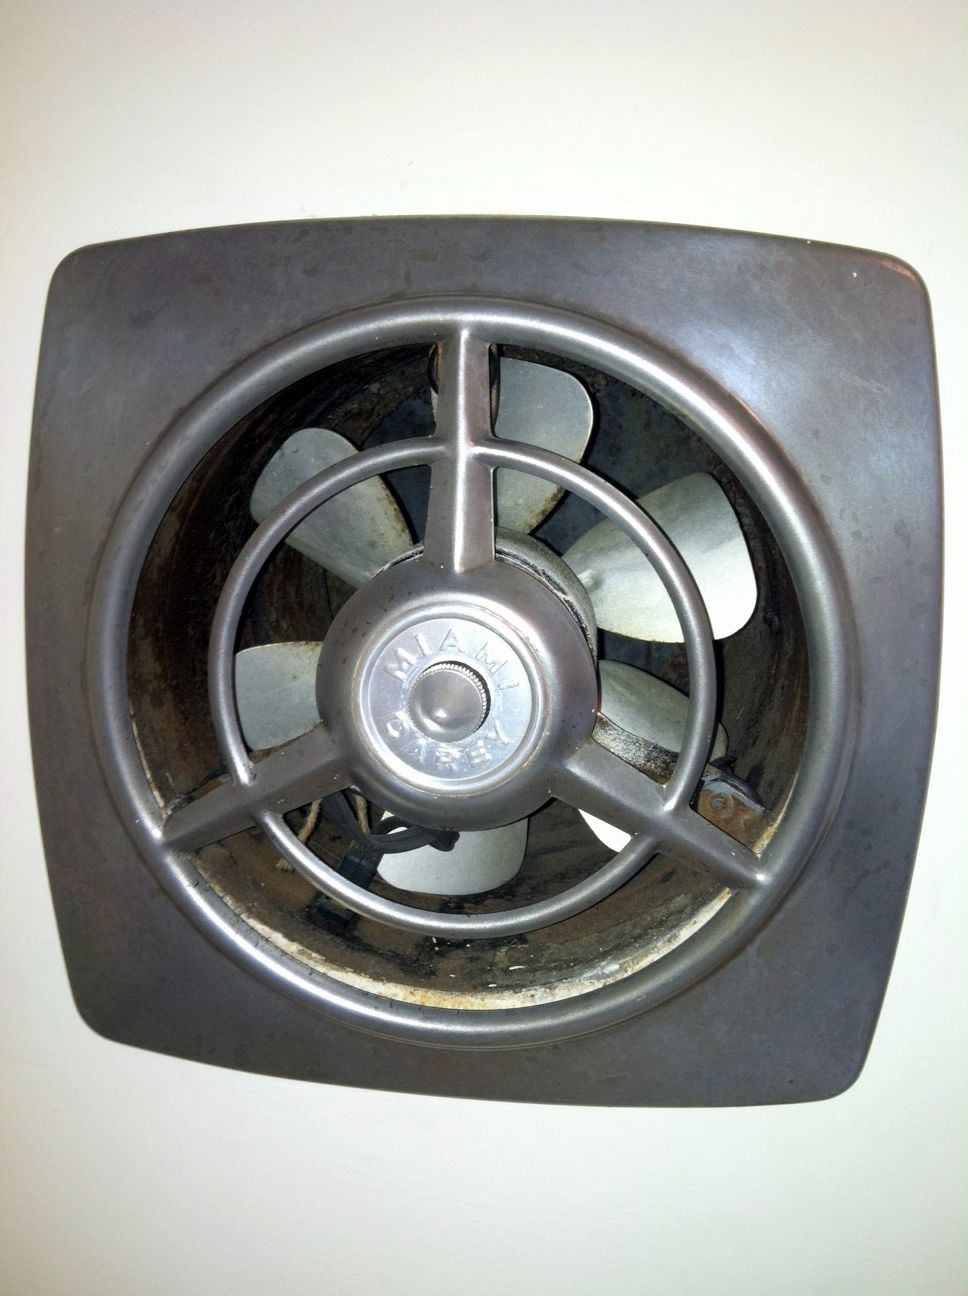 Broan Ventilation Fan Nutone Exhaust Fans Nutone